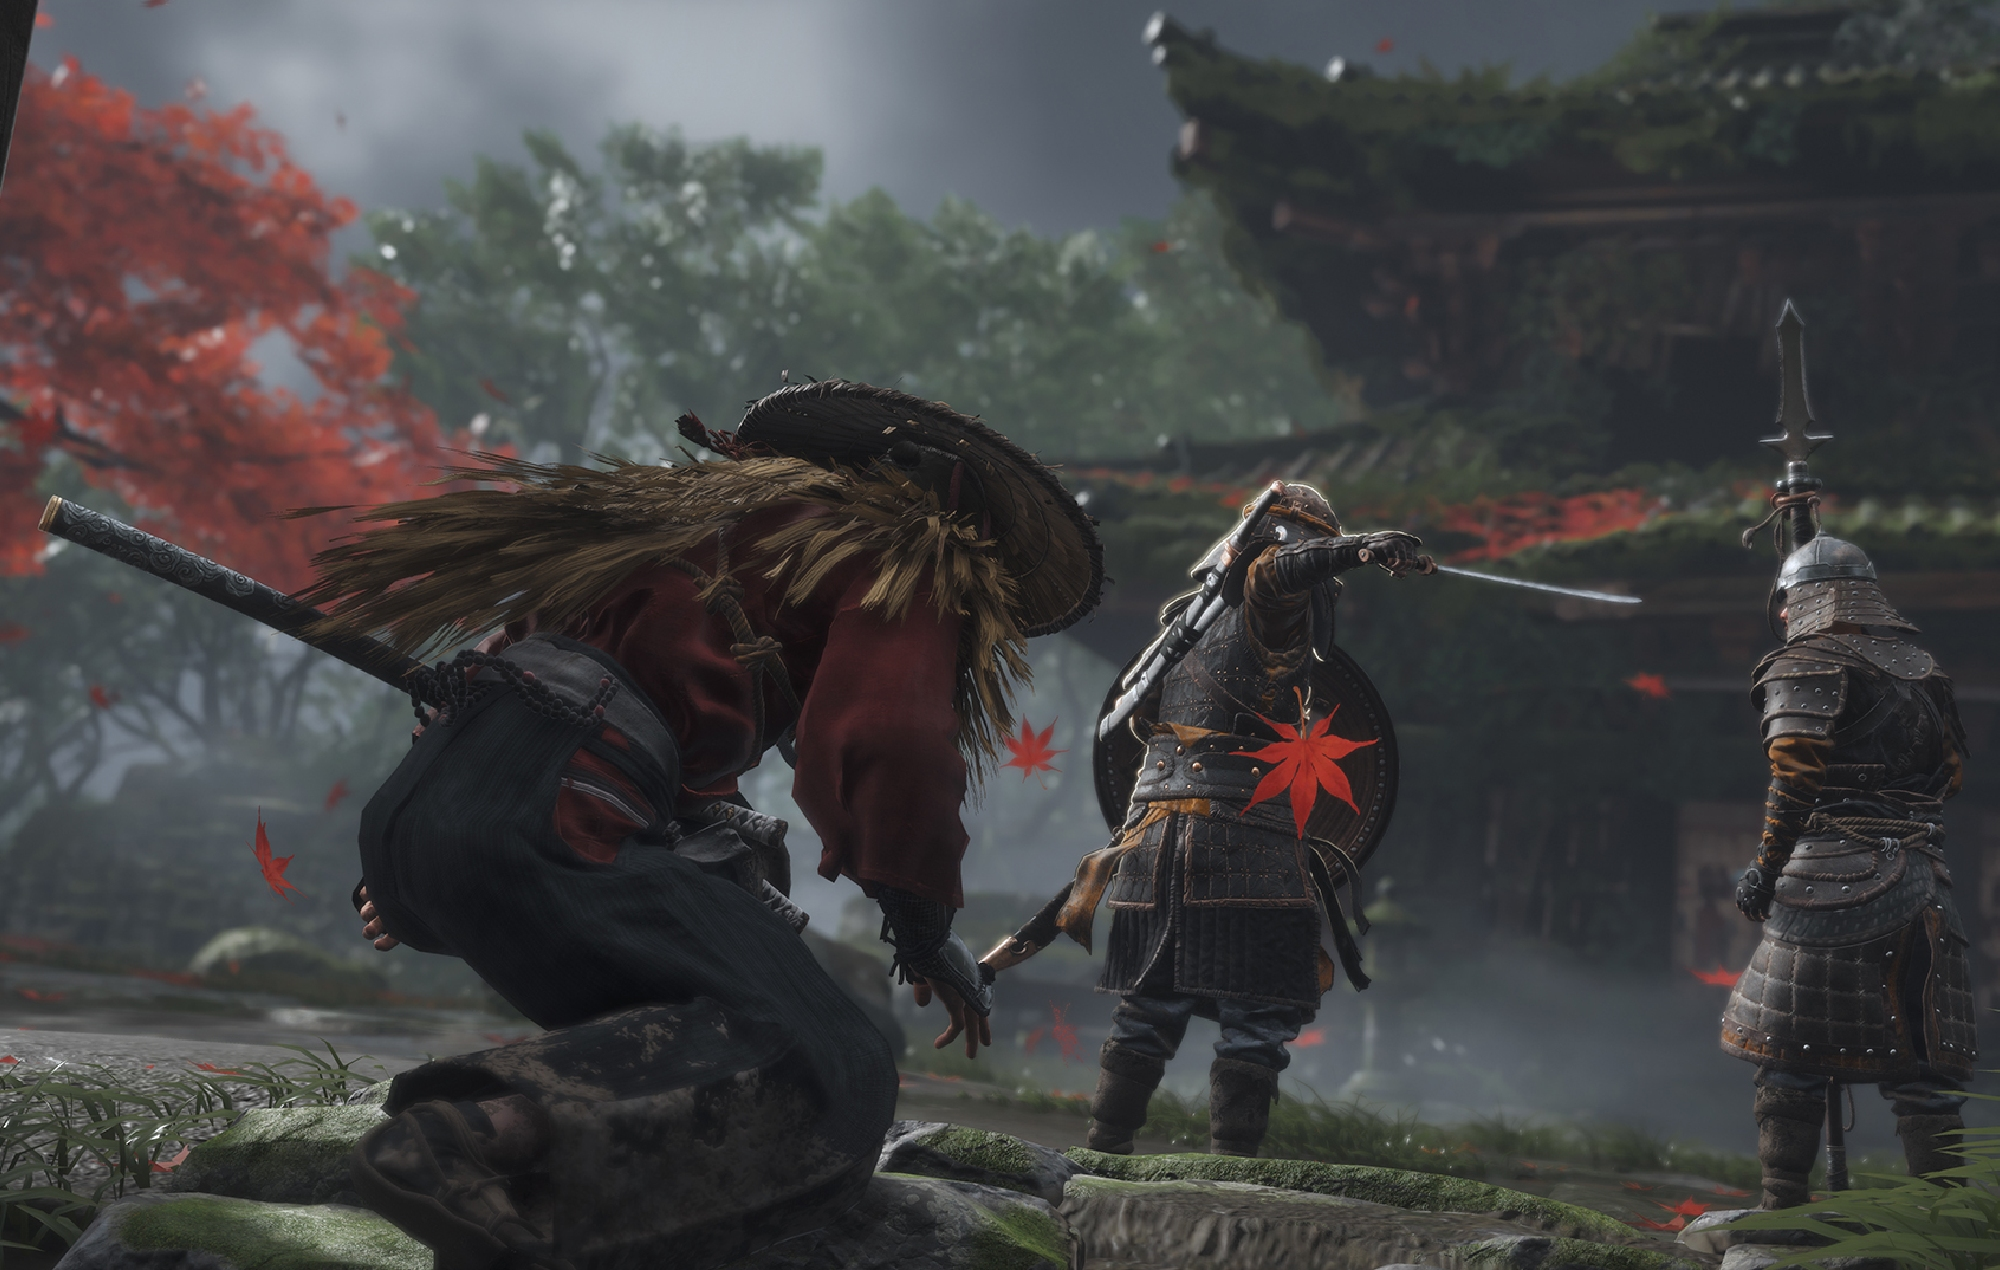 Sony's State Of Play to debut new 'Ghost Of Tsushima' gameplay footage